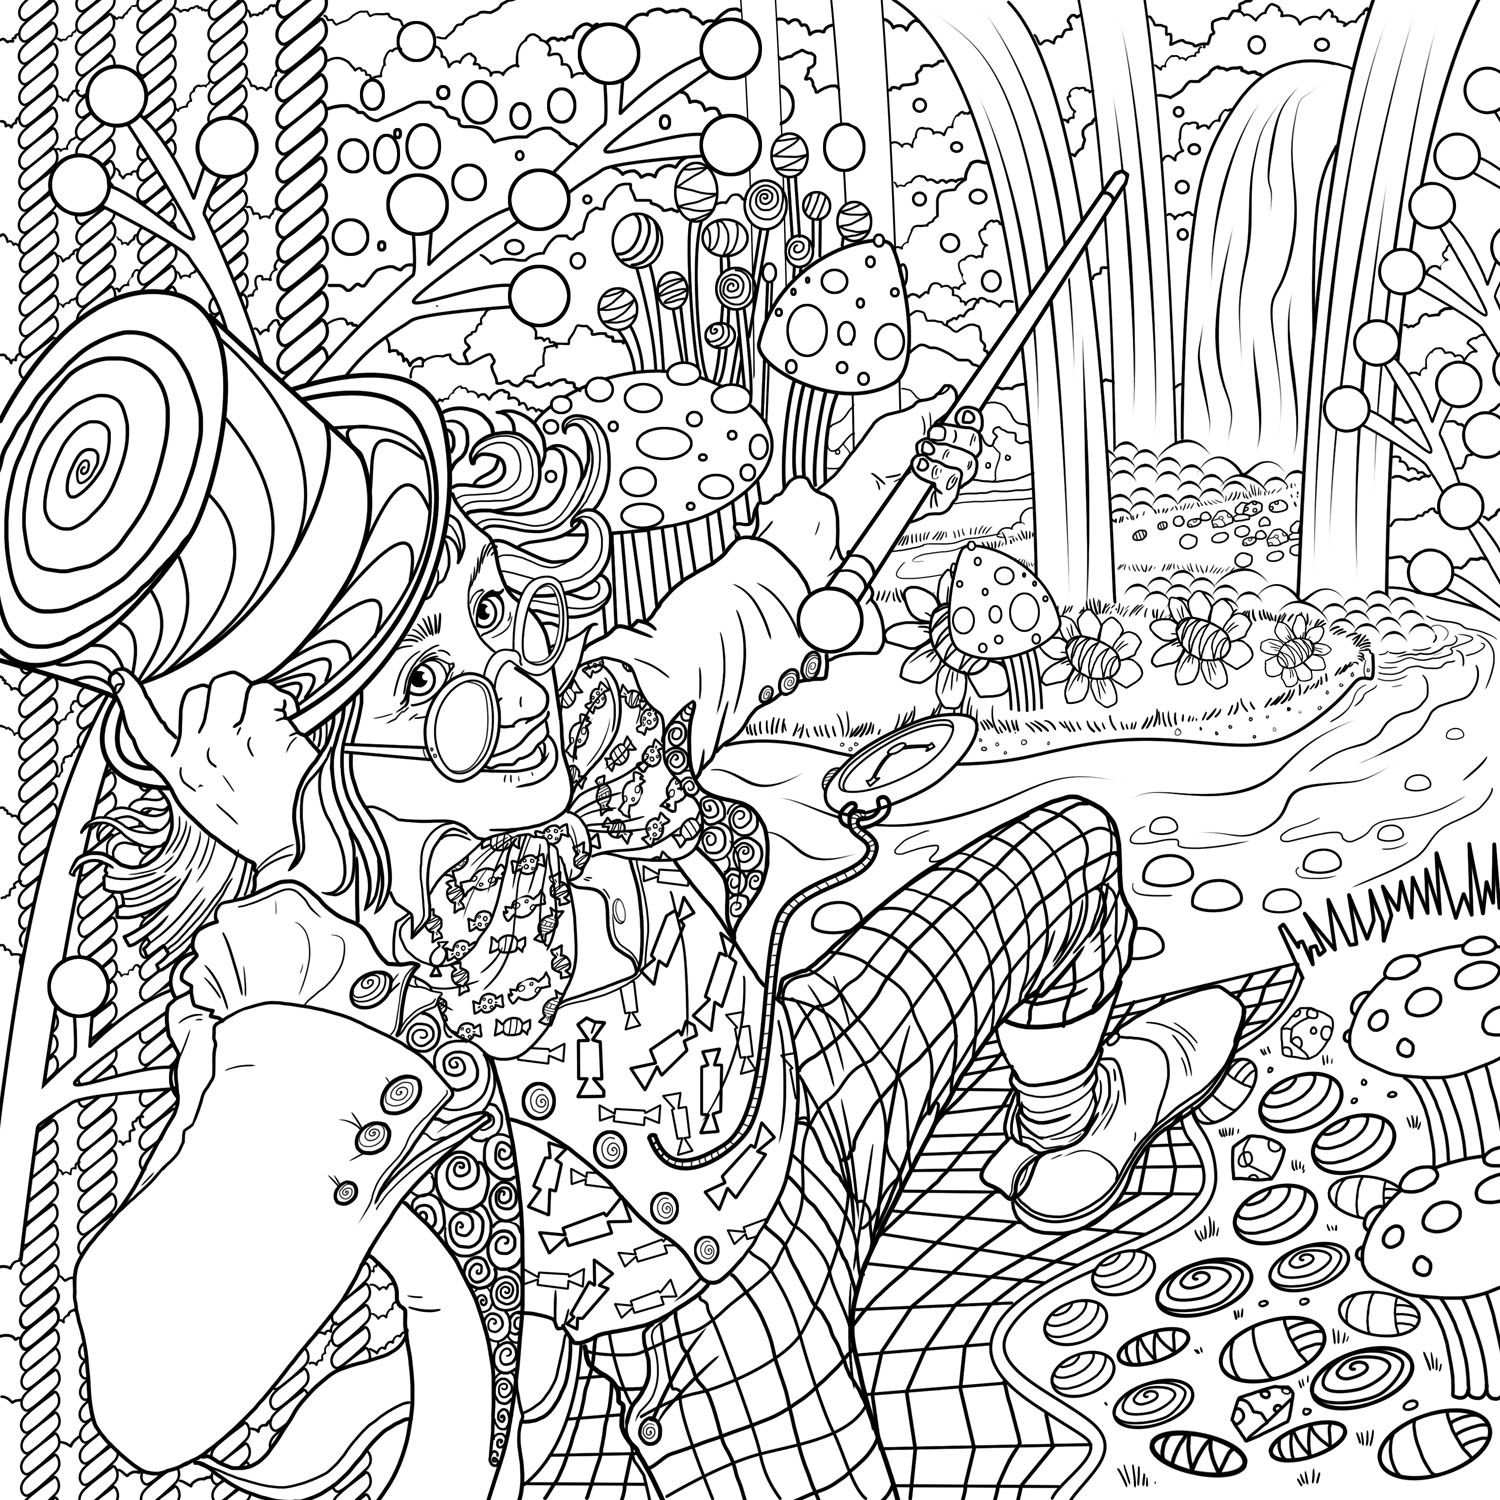 charlie and the chocolate factory coloring sheets elegant charlie and the chocolate factory coloring pages charlie chocolate and sheets factory the coloring